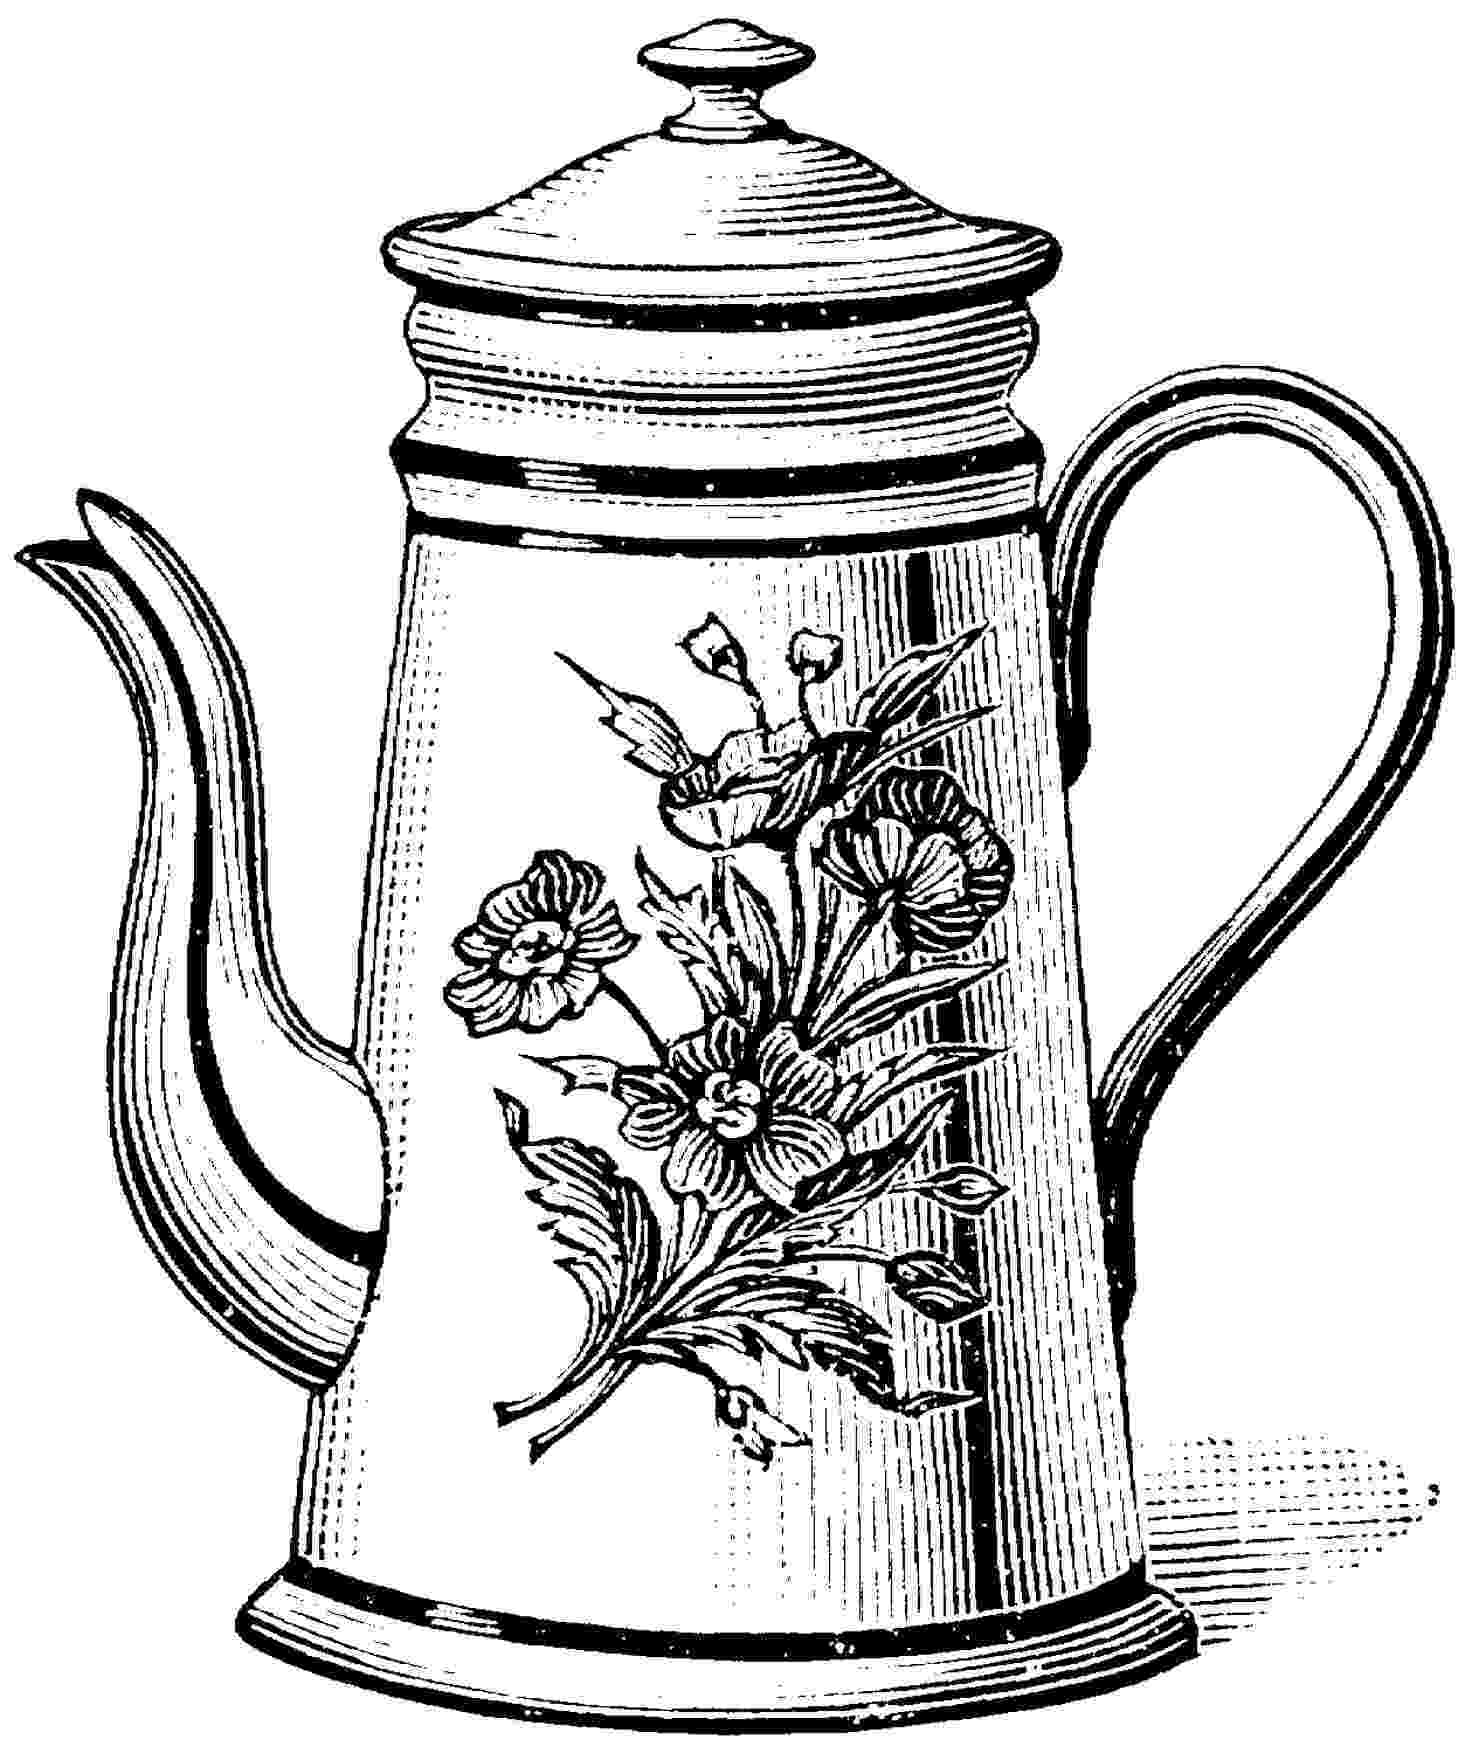 pictures of teapots to colour tea sets drawing and coloring cup teapot toy learn pictures to colour of teapots